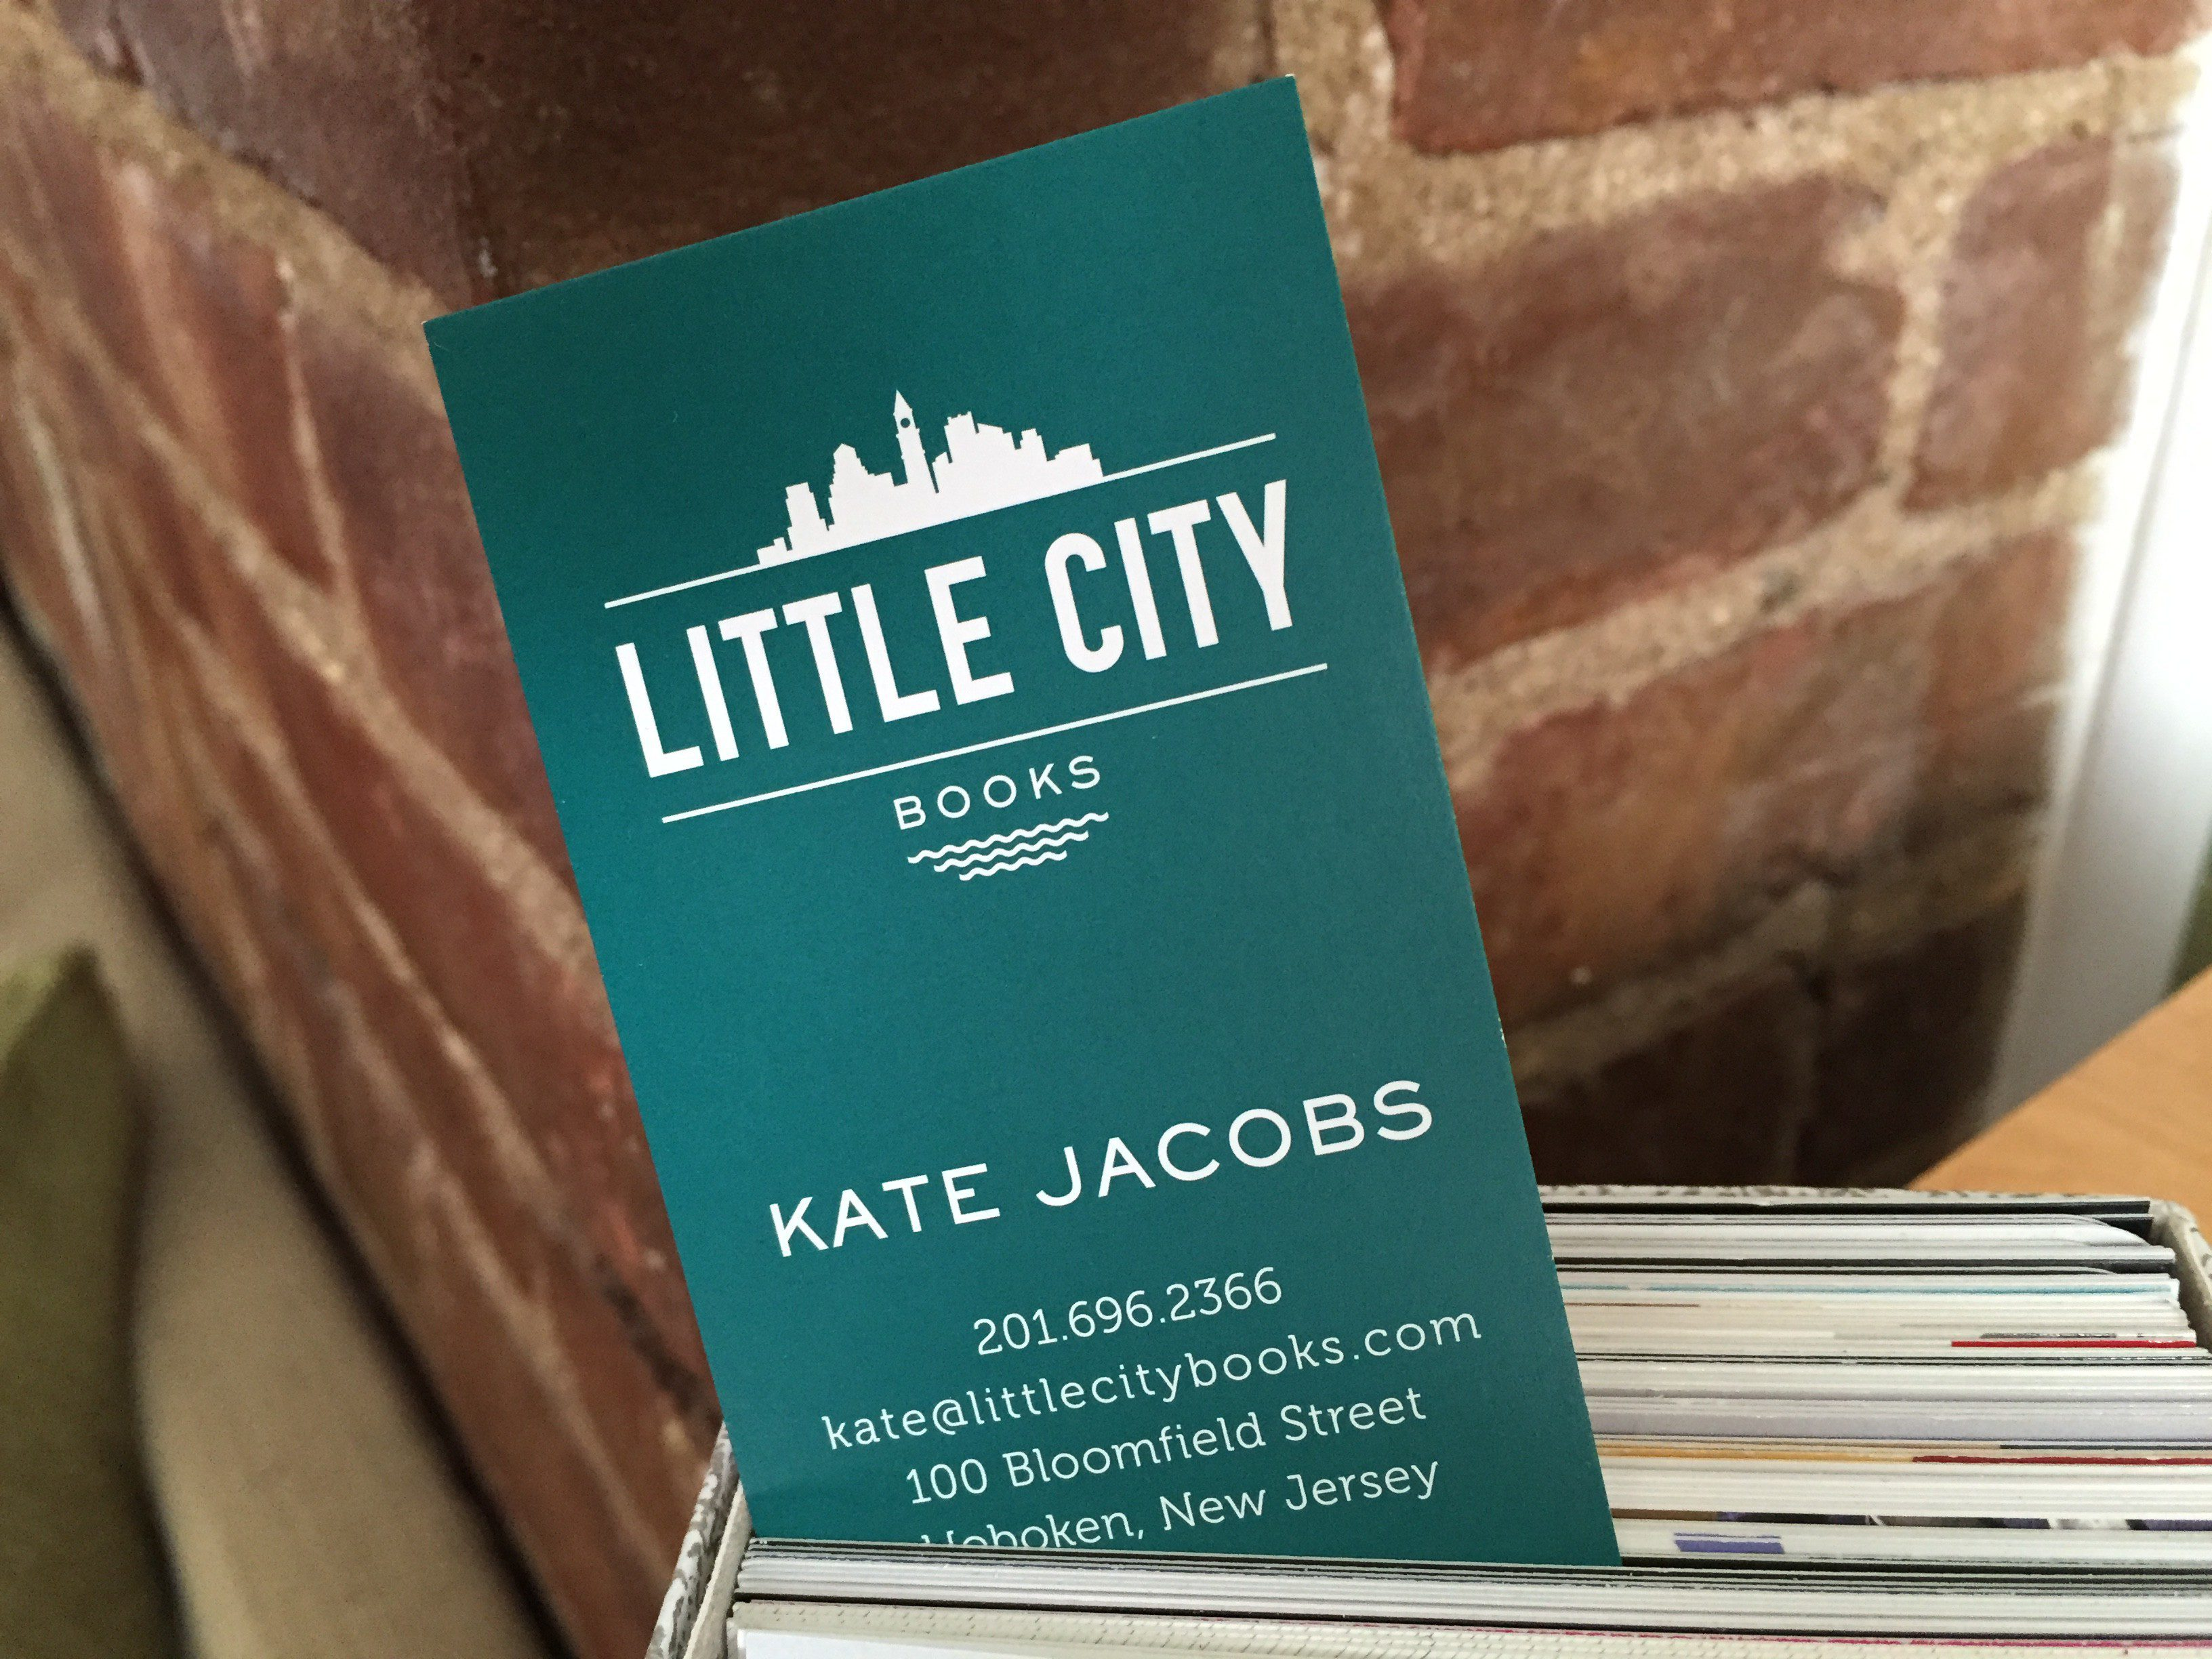 Business Cards | Weiss Printers